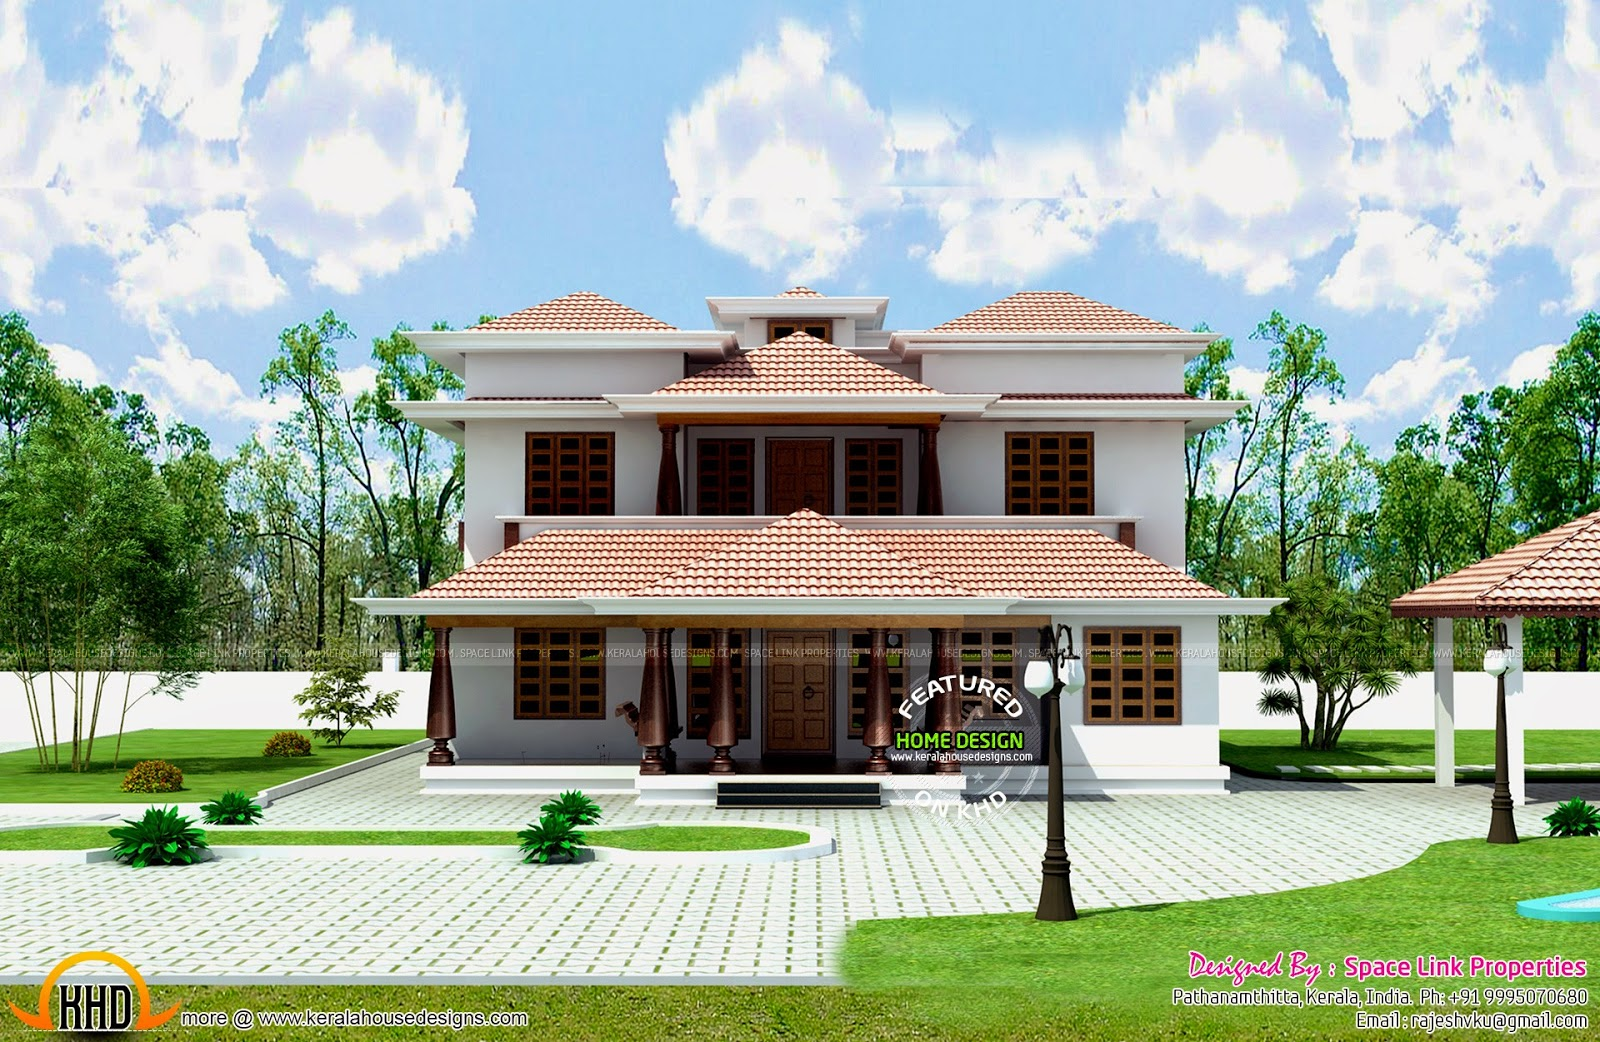 Typical kerala traditional house kerala home design and for Traditional style house